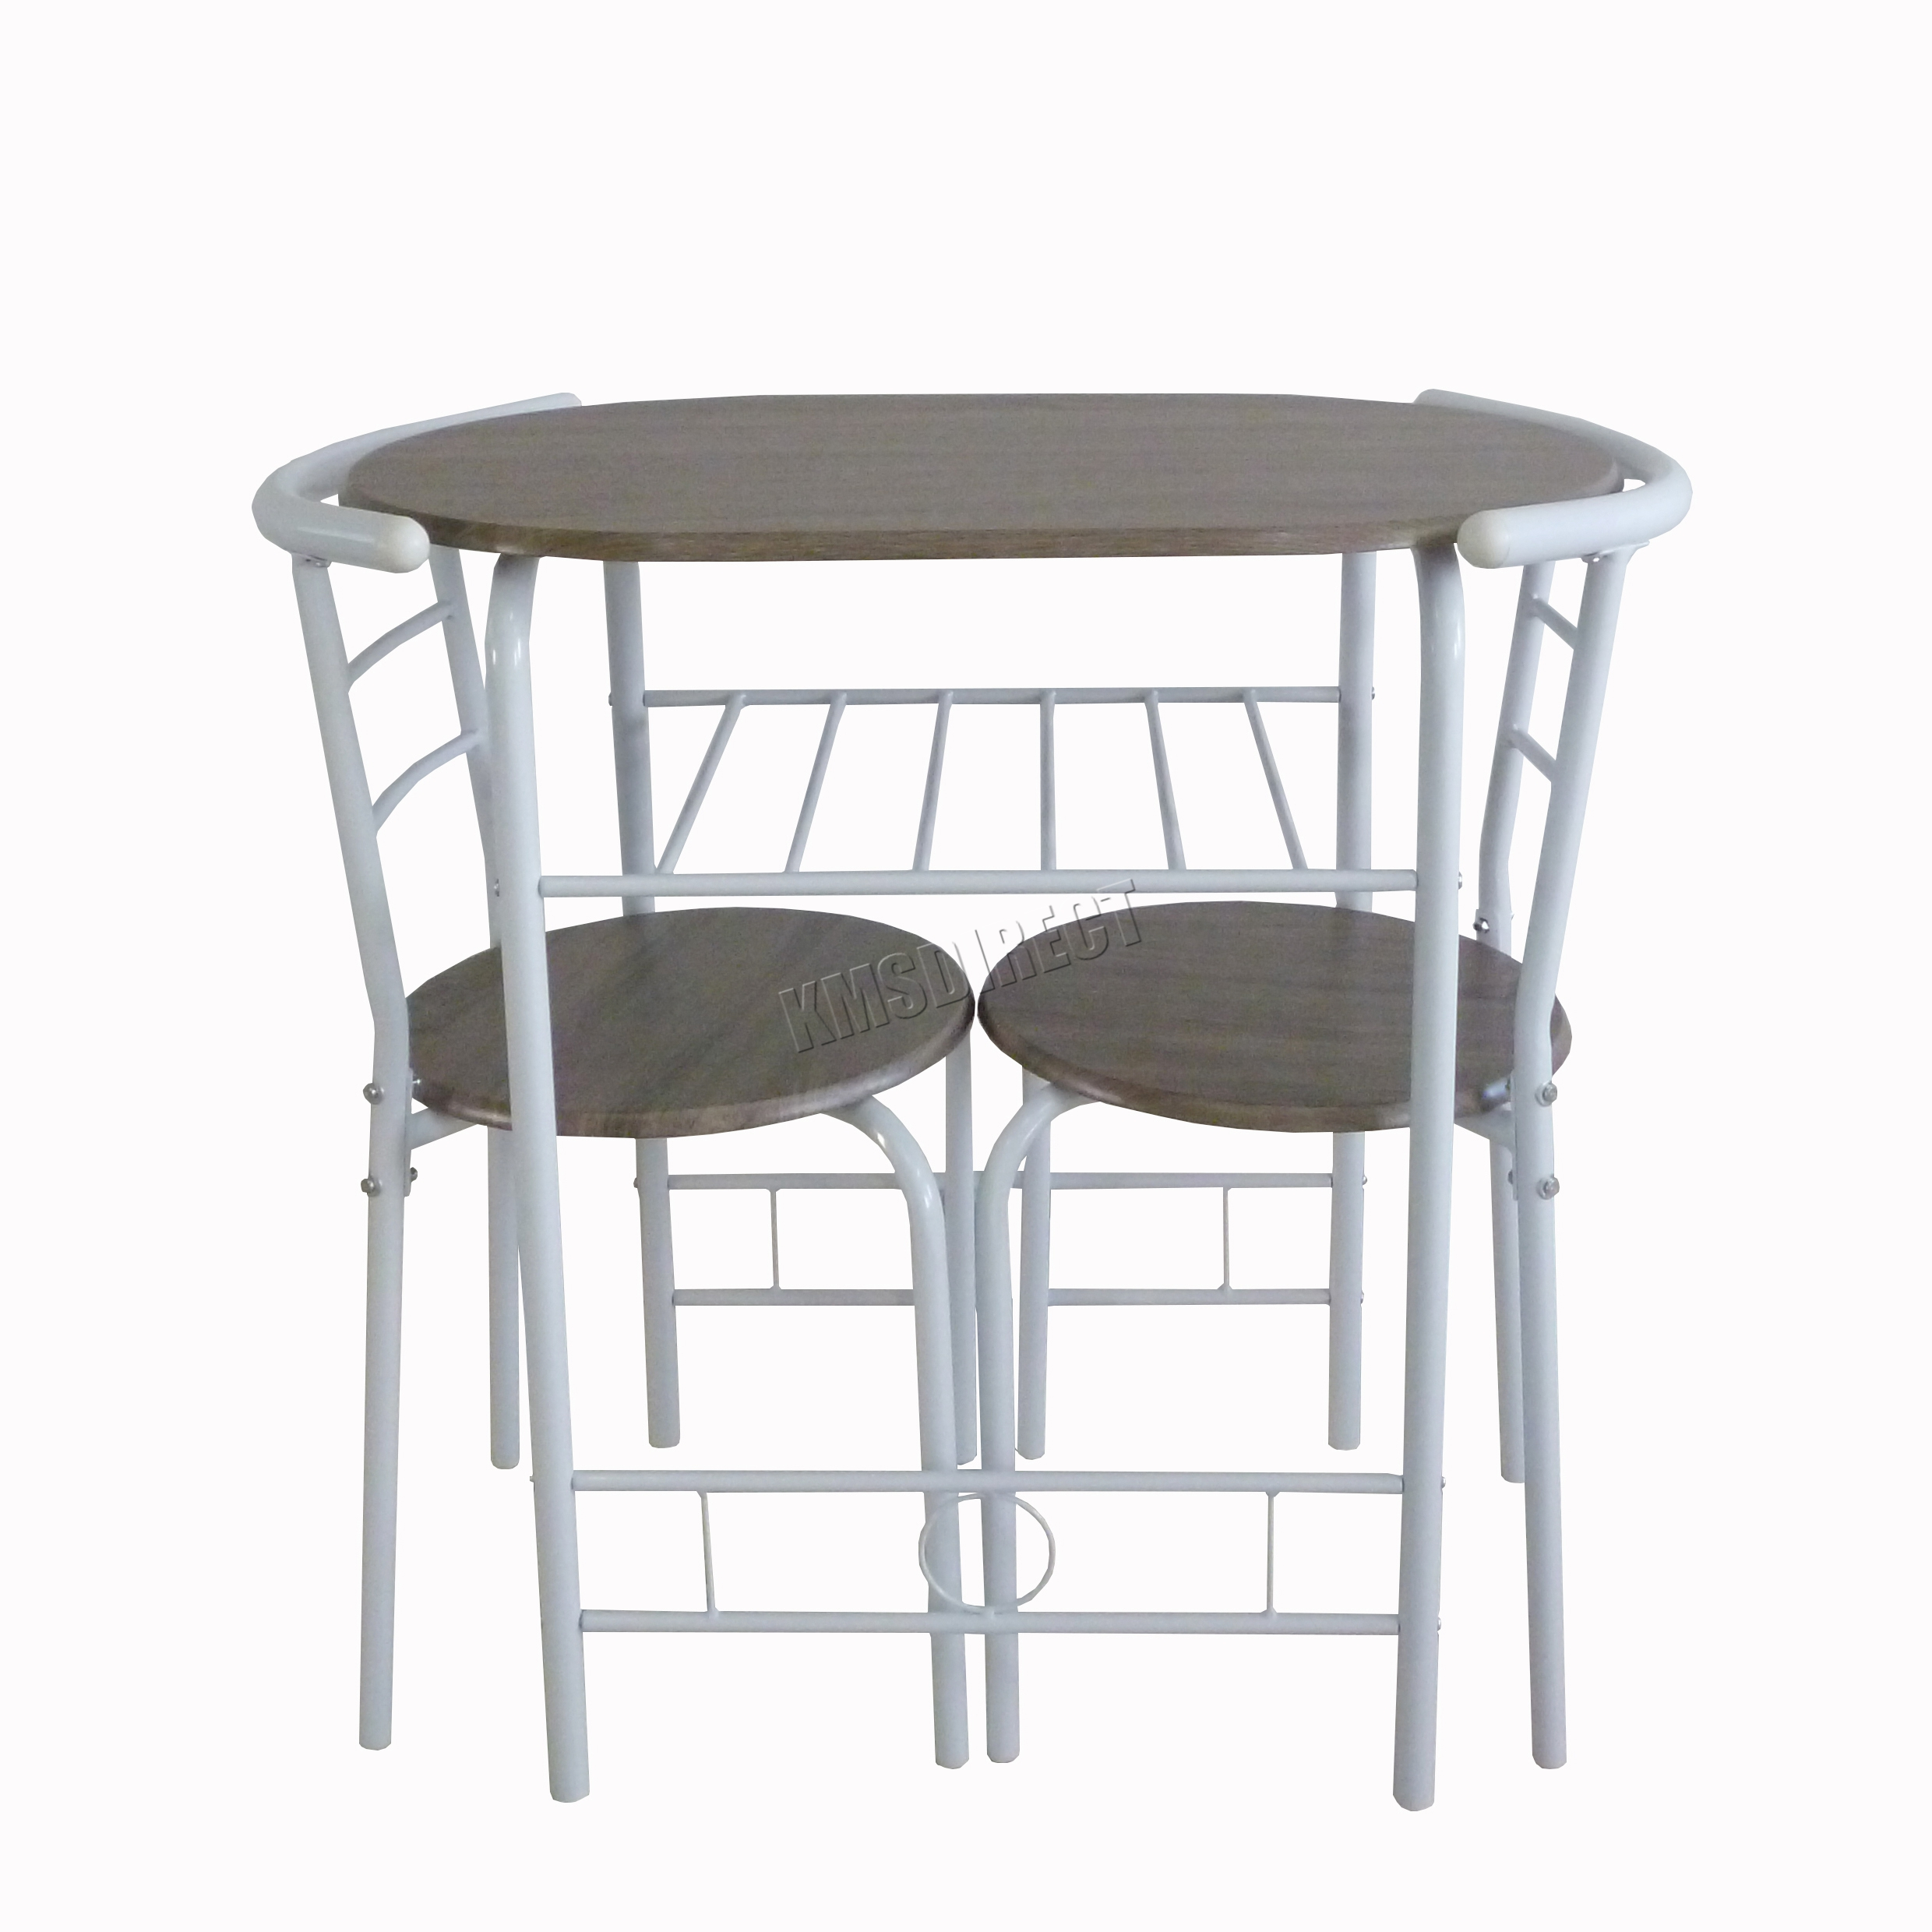 Foxhunter dining table breakfast bar 2 chair set metal mdf - White metal dining table ...